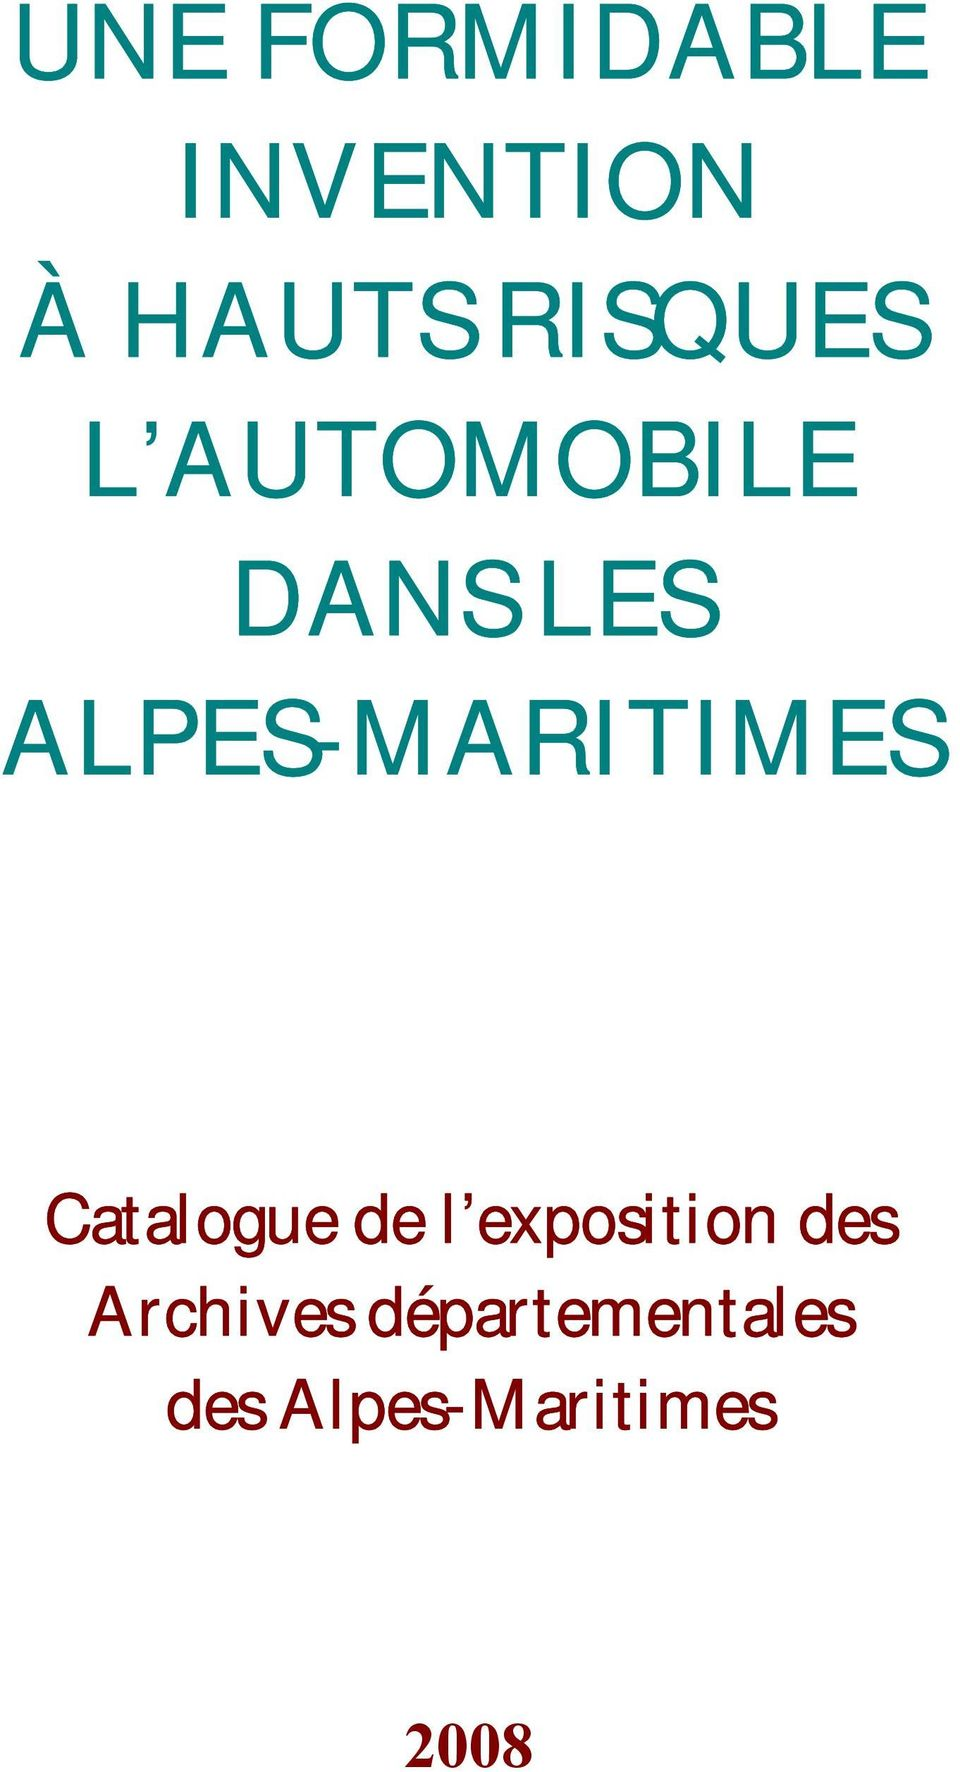 ALPES-MARITIMES Catalogue de l